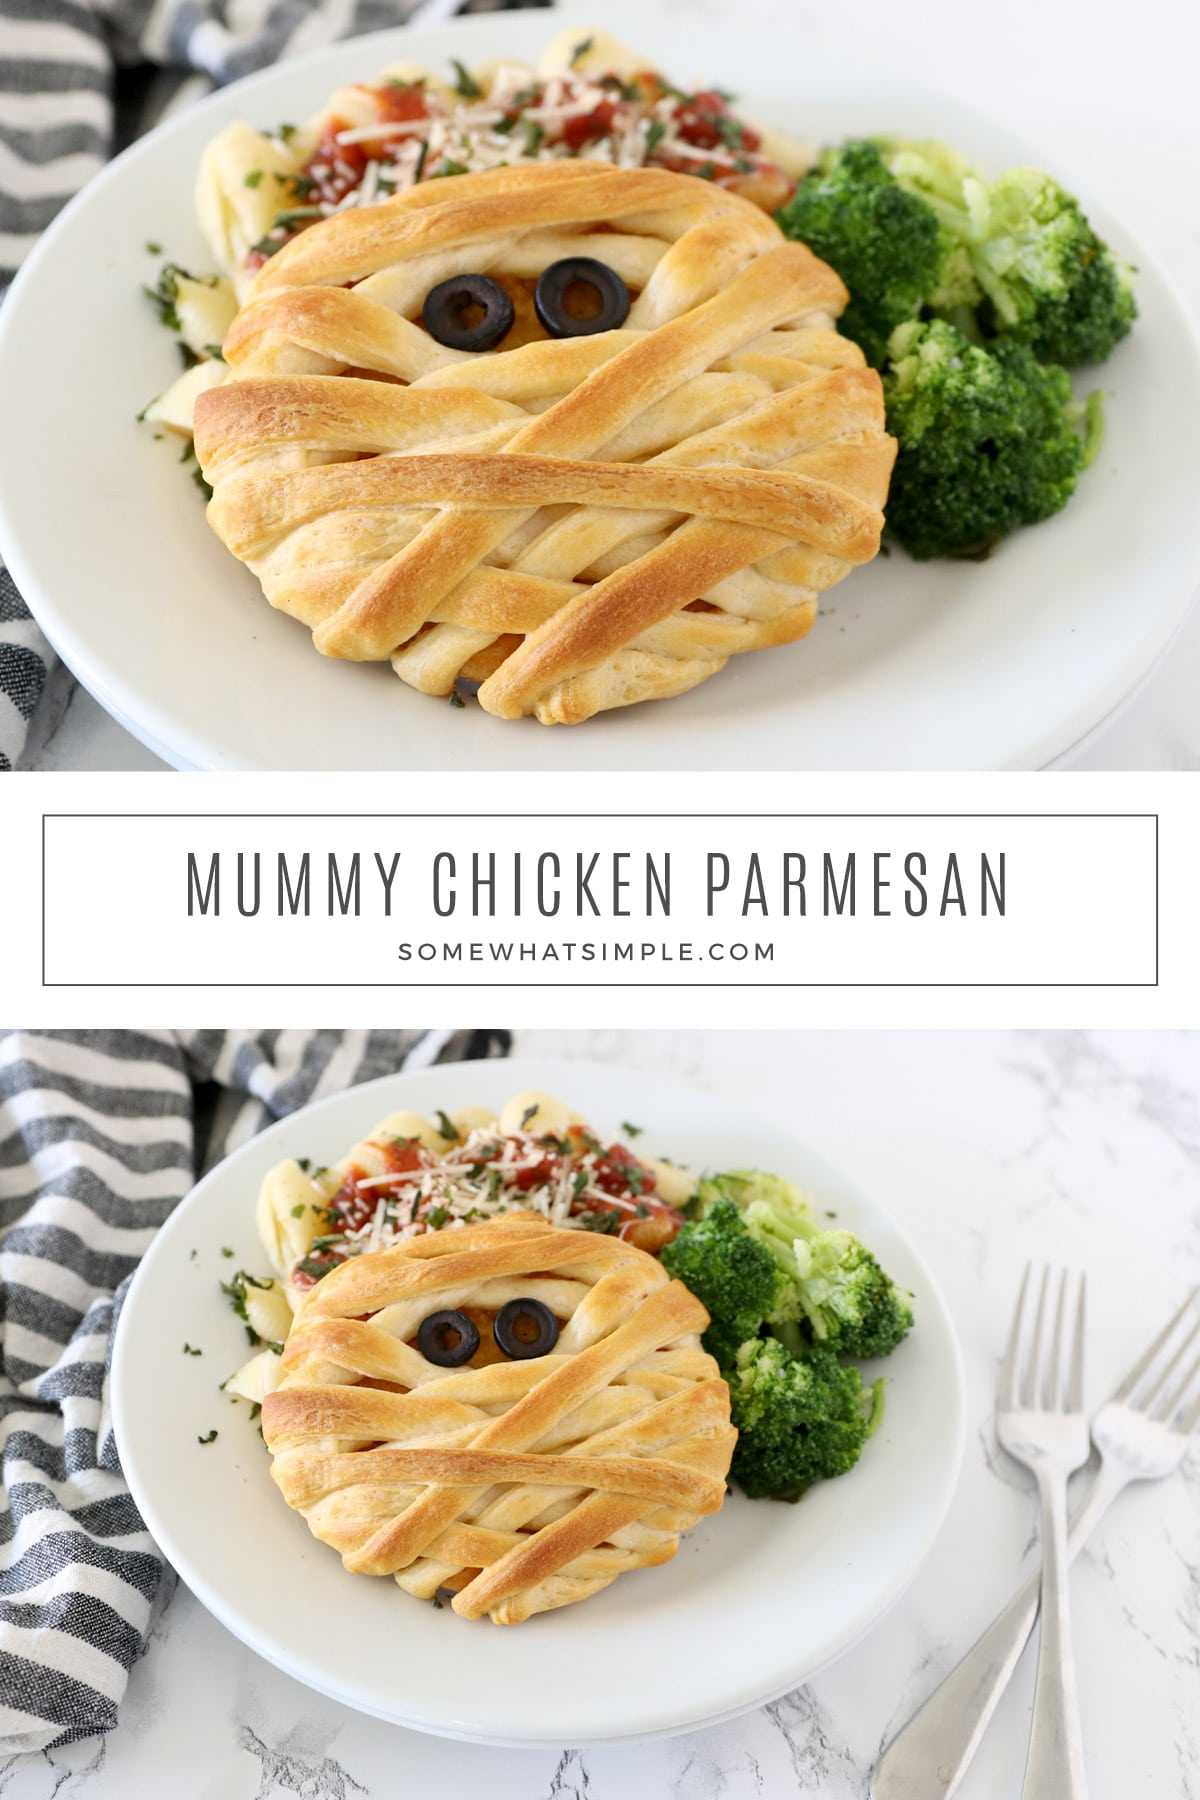 Mummy Chicken Parmesan is a simple Halloween dinner your kids will love! Made with 3 ingredients and ready in 20 minutes, it's festive, fun, and tasty too! via @somewhatsimple